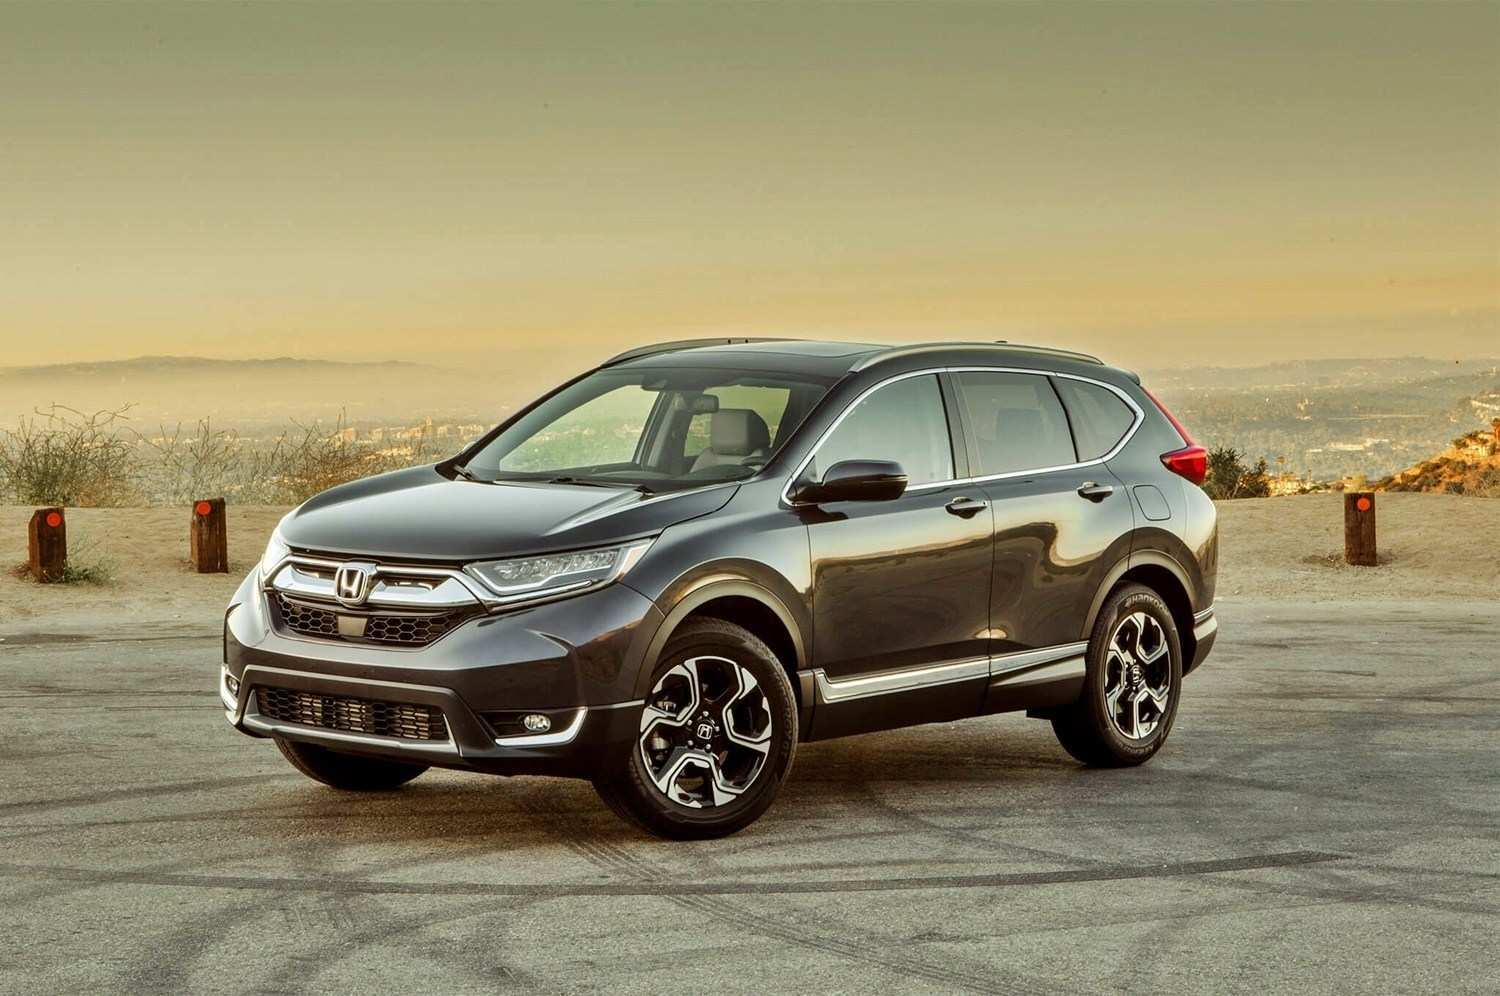 91 The Best 2020 Honda Crv Release Date Configurations